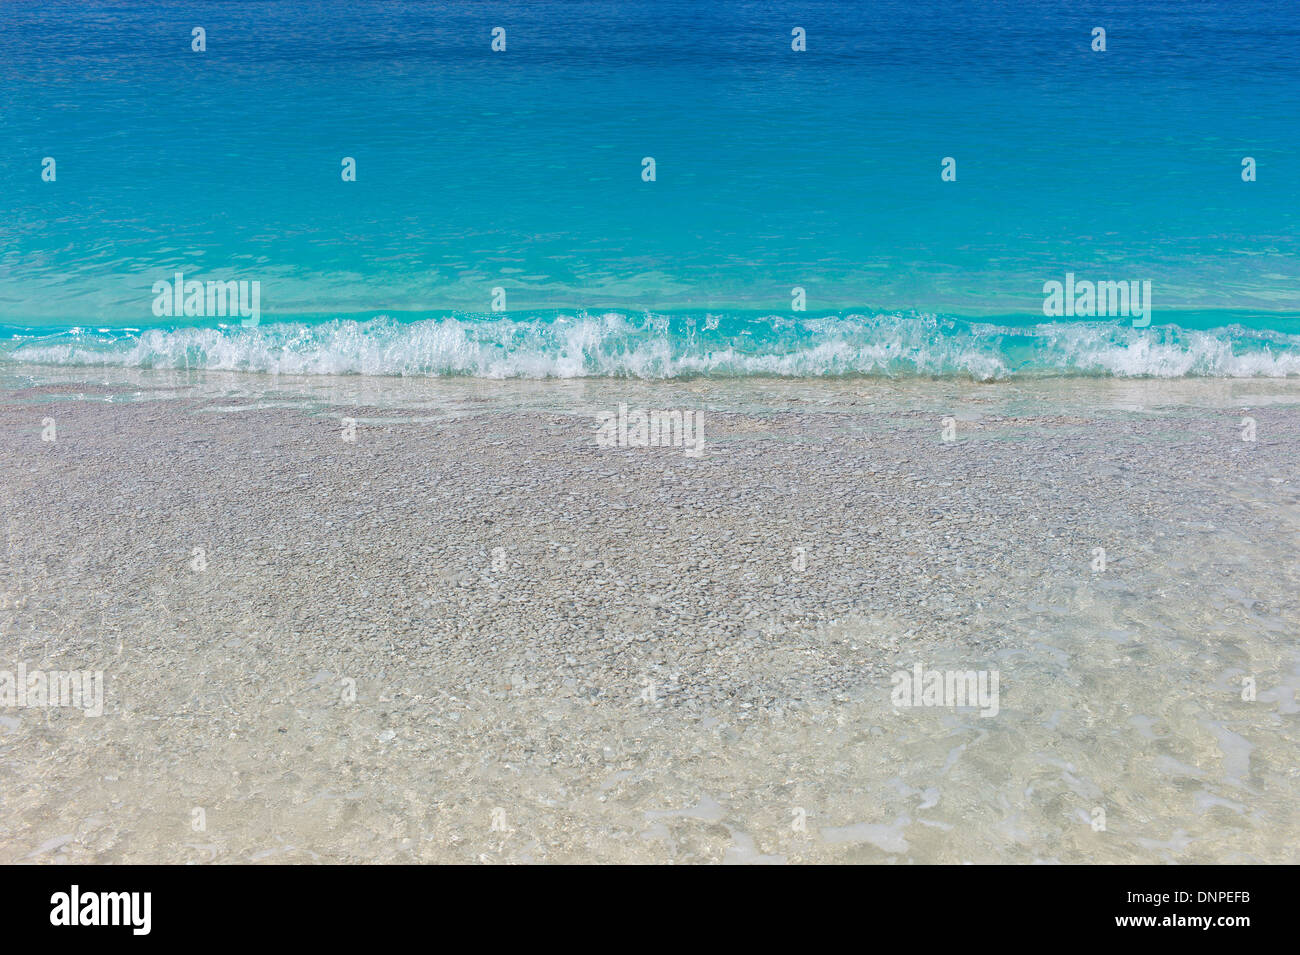 Turquoise blue sea and white pebbles at Myrtos Beach, Cefalonia, Greece - Stock Image